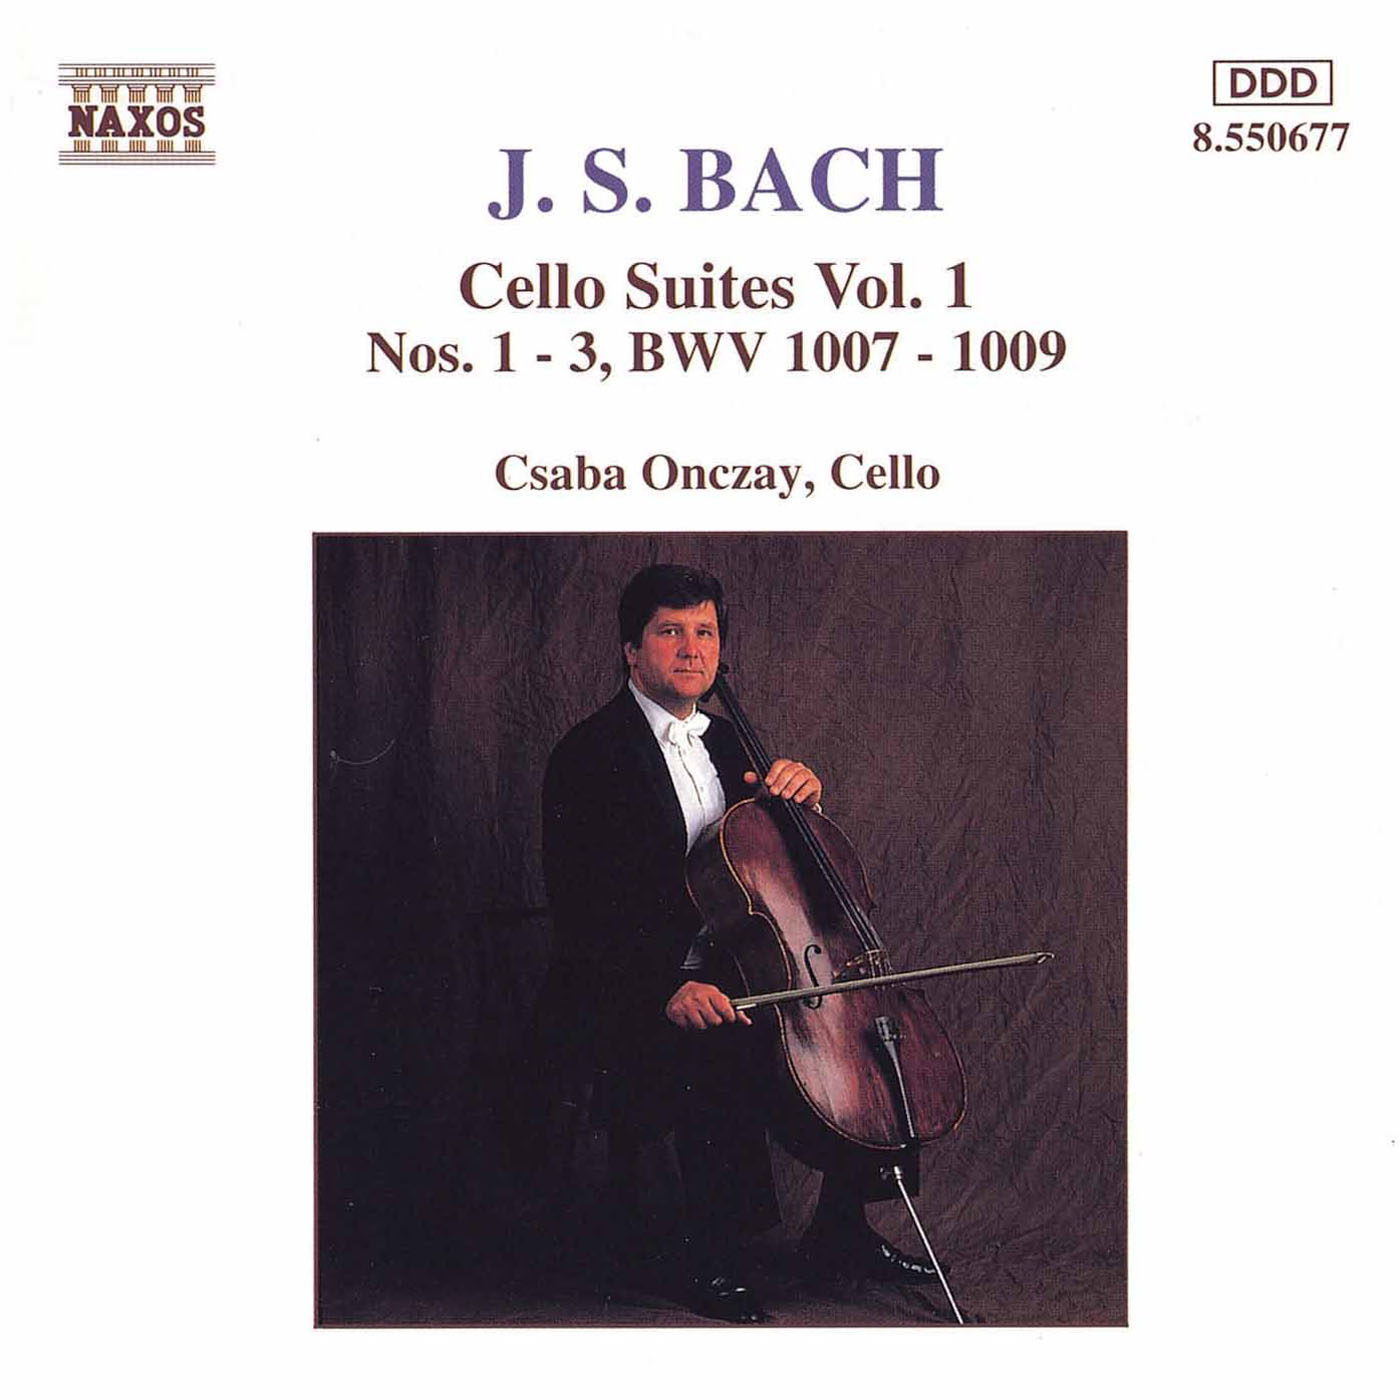 Bach, J.S.: Cello Suites Nos. 1-3, Bwv 1007-1009